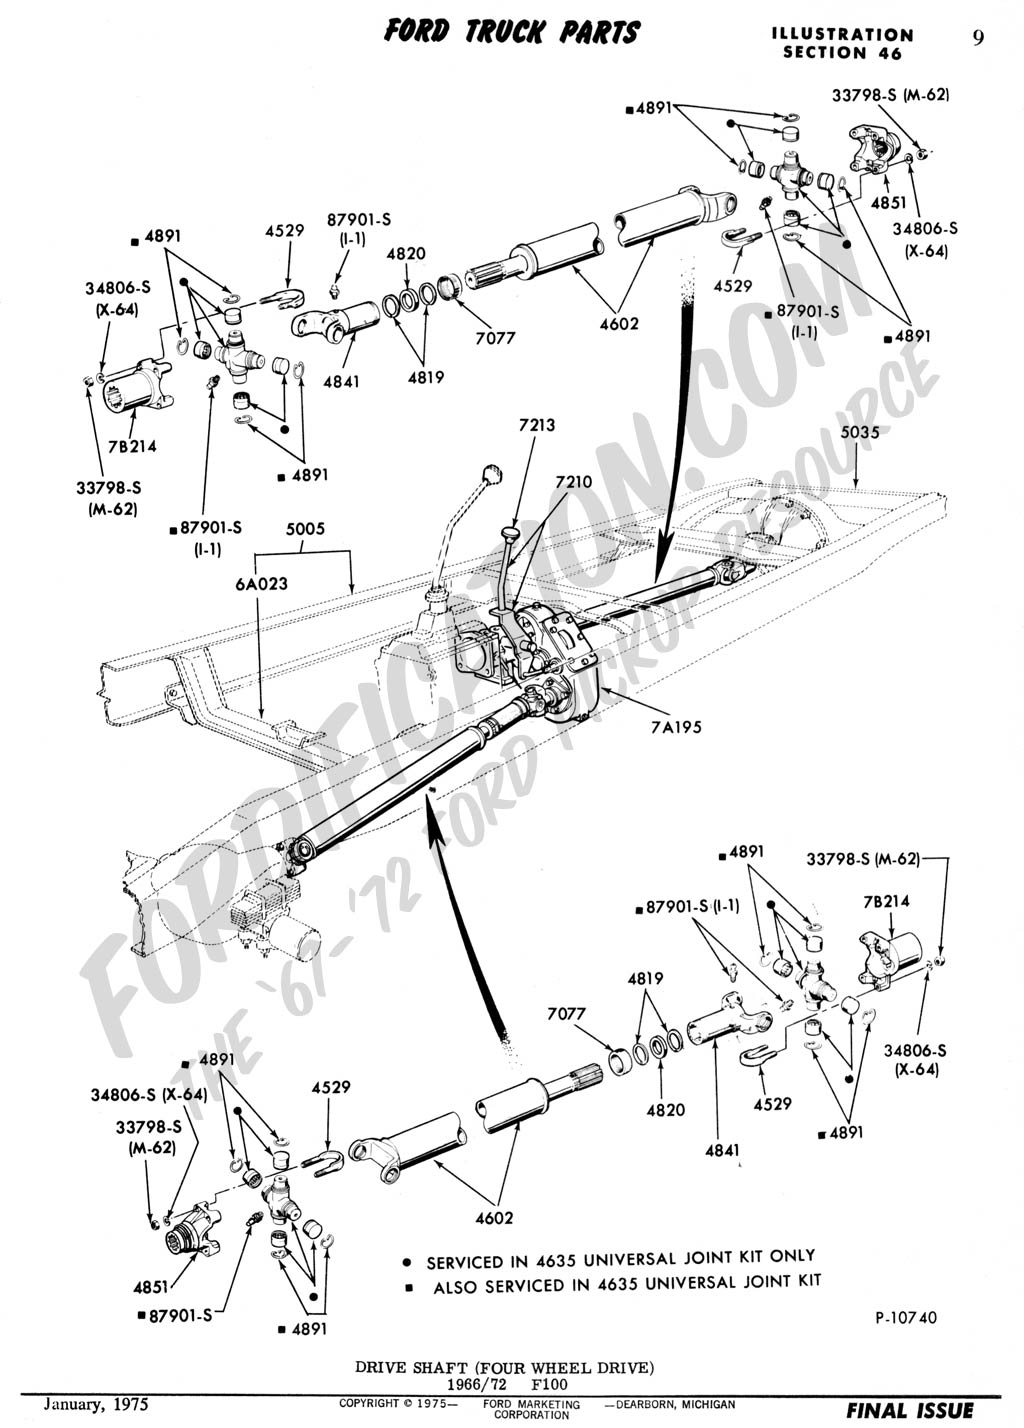 Ford F100 Front Suspension Diagram on 1959 impala wiring diagram